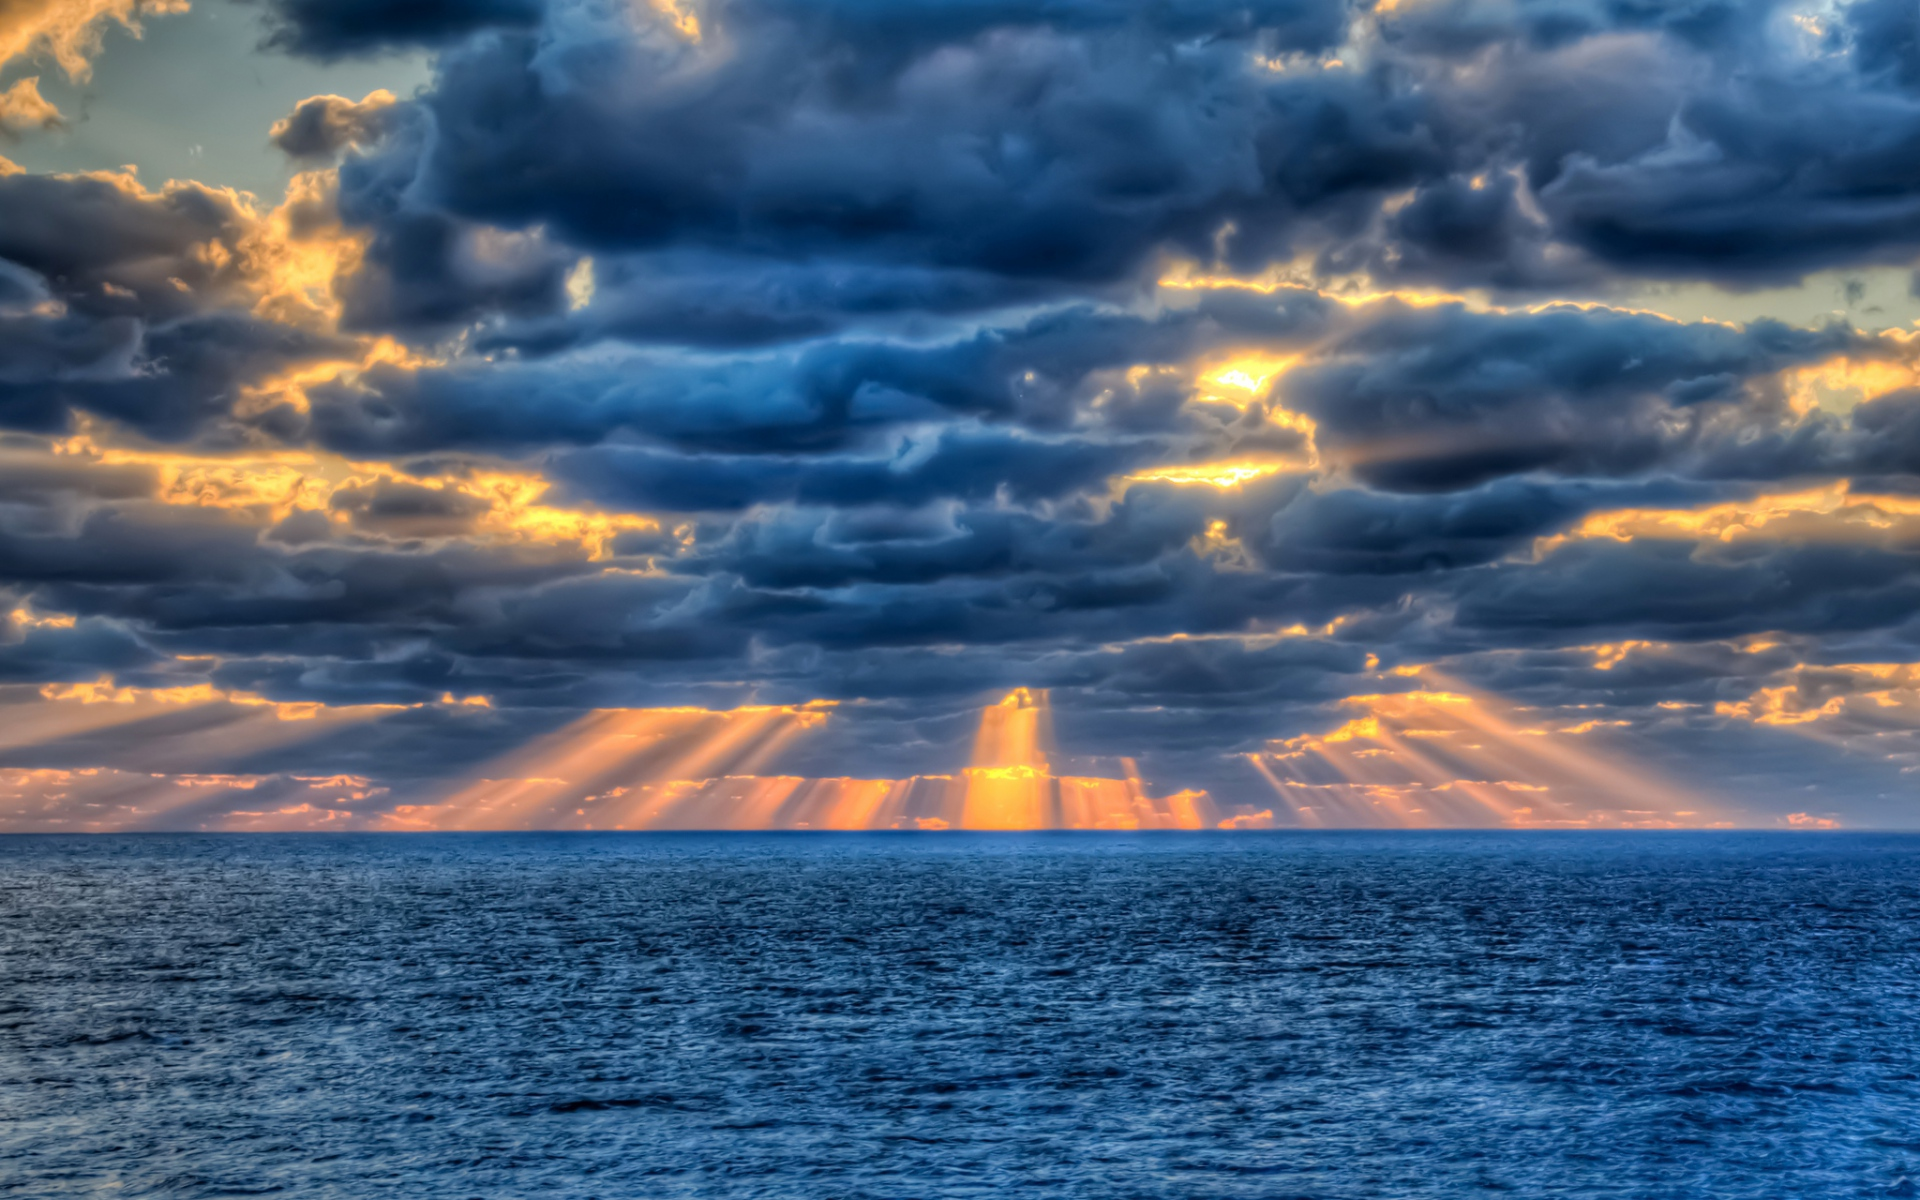 sunset clouds and ocean wallpaper - photo #10